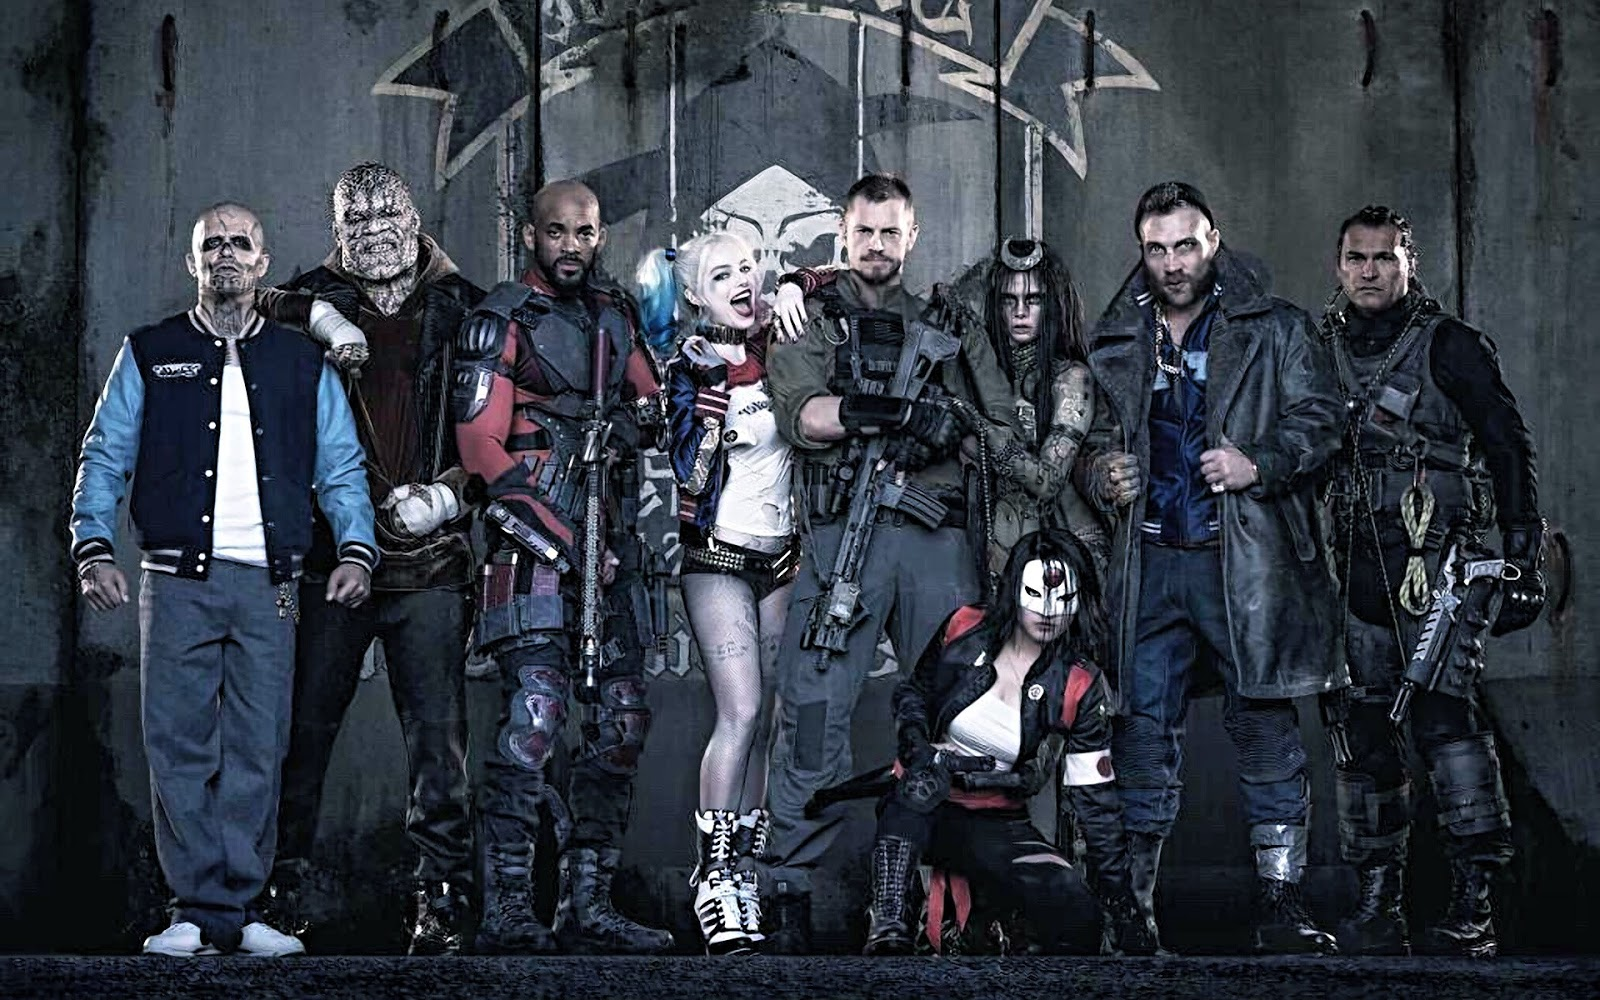 suicide squad full movie free online download